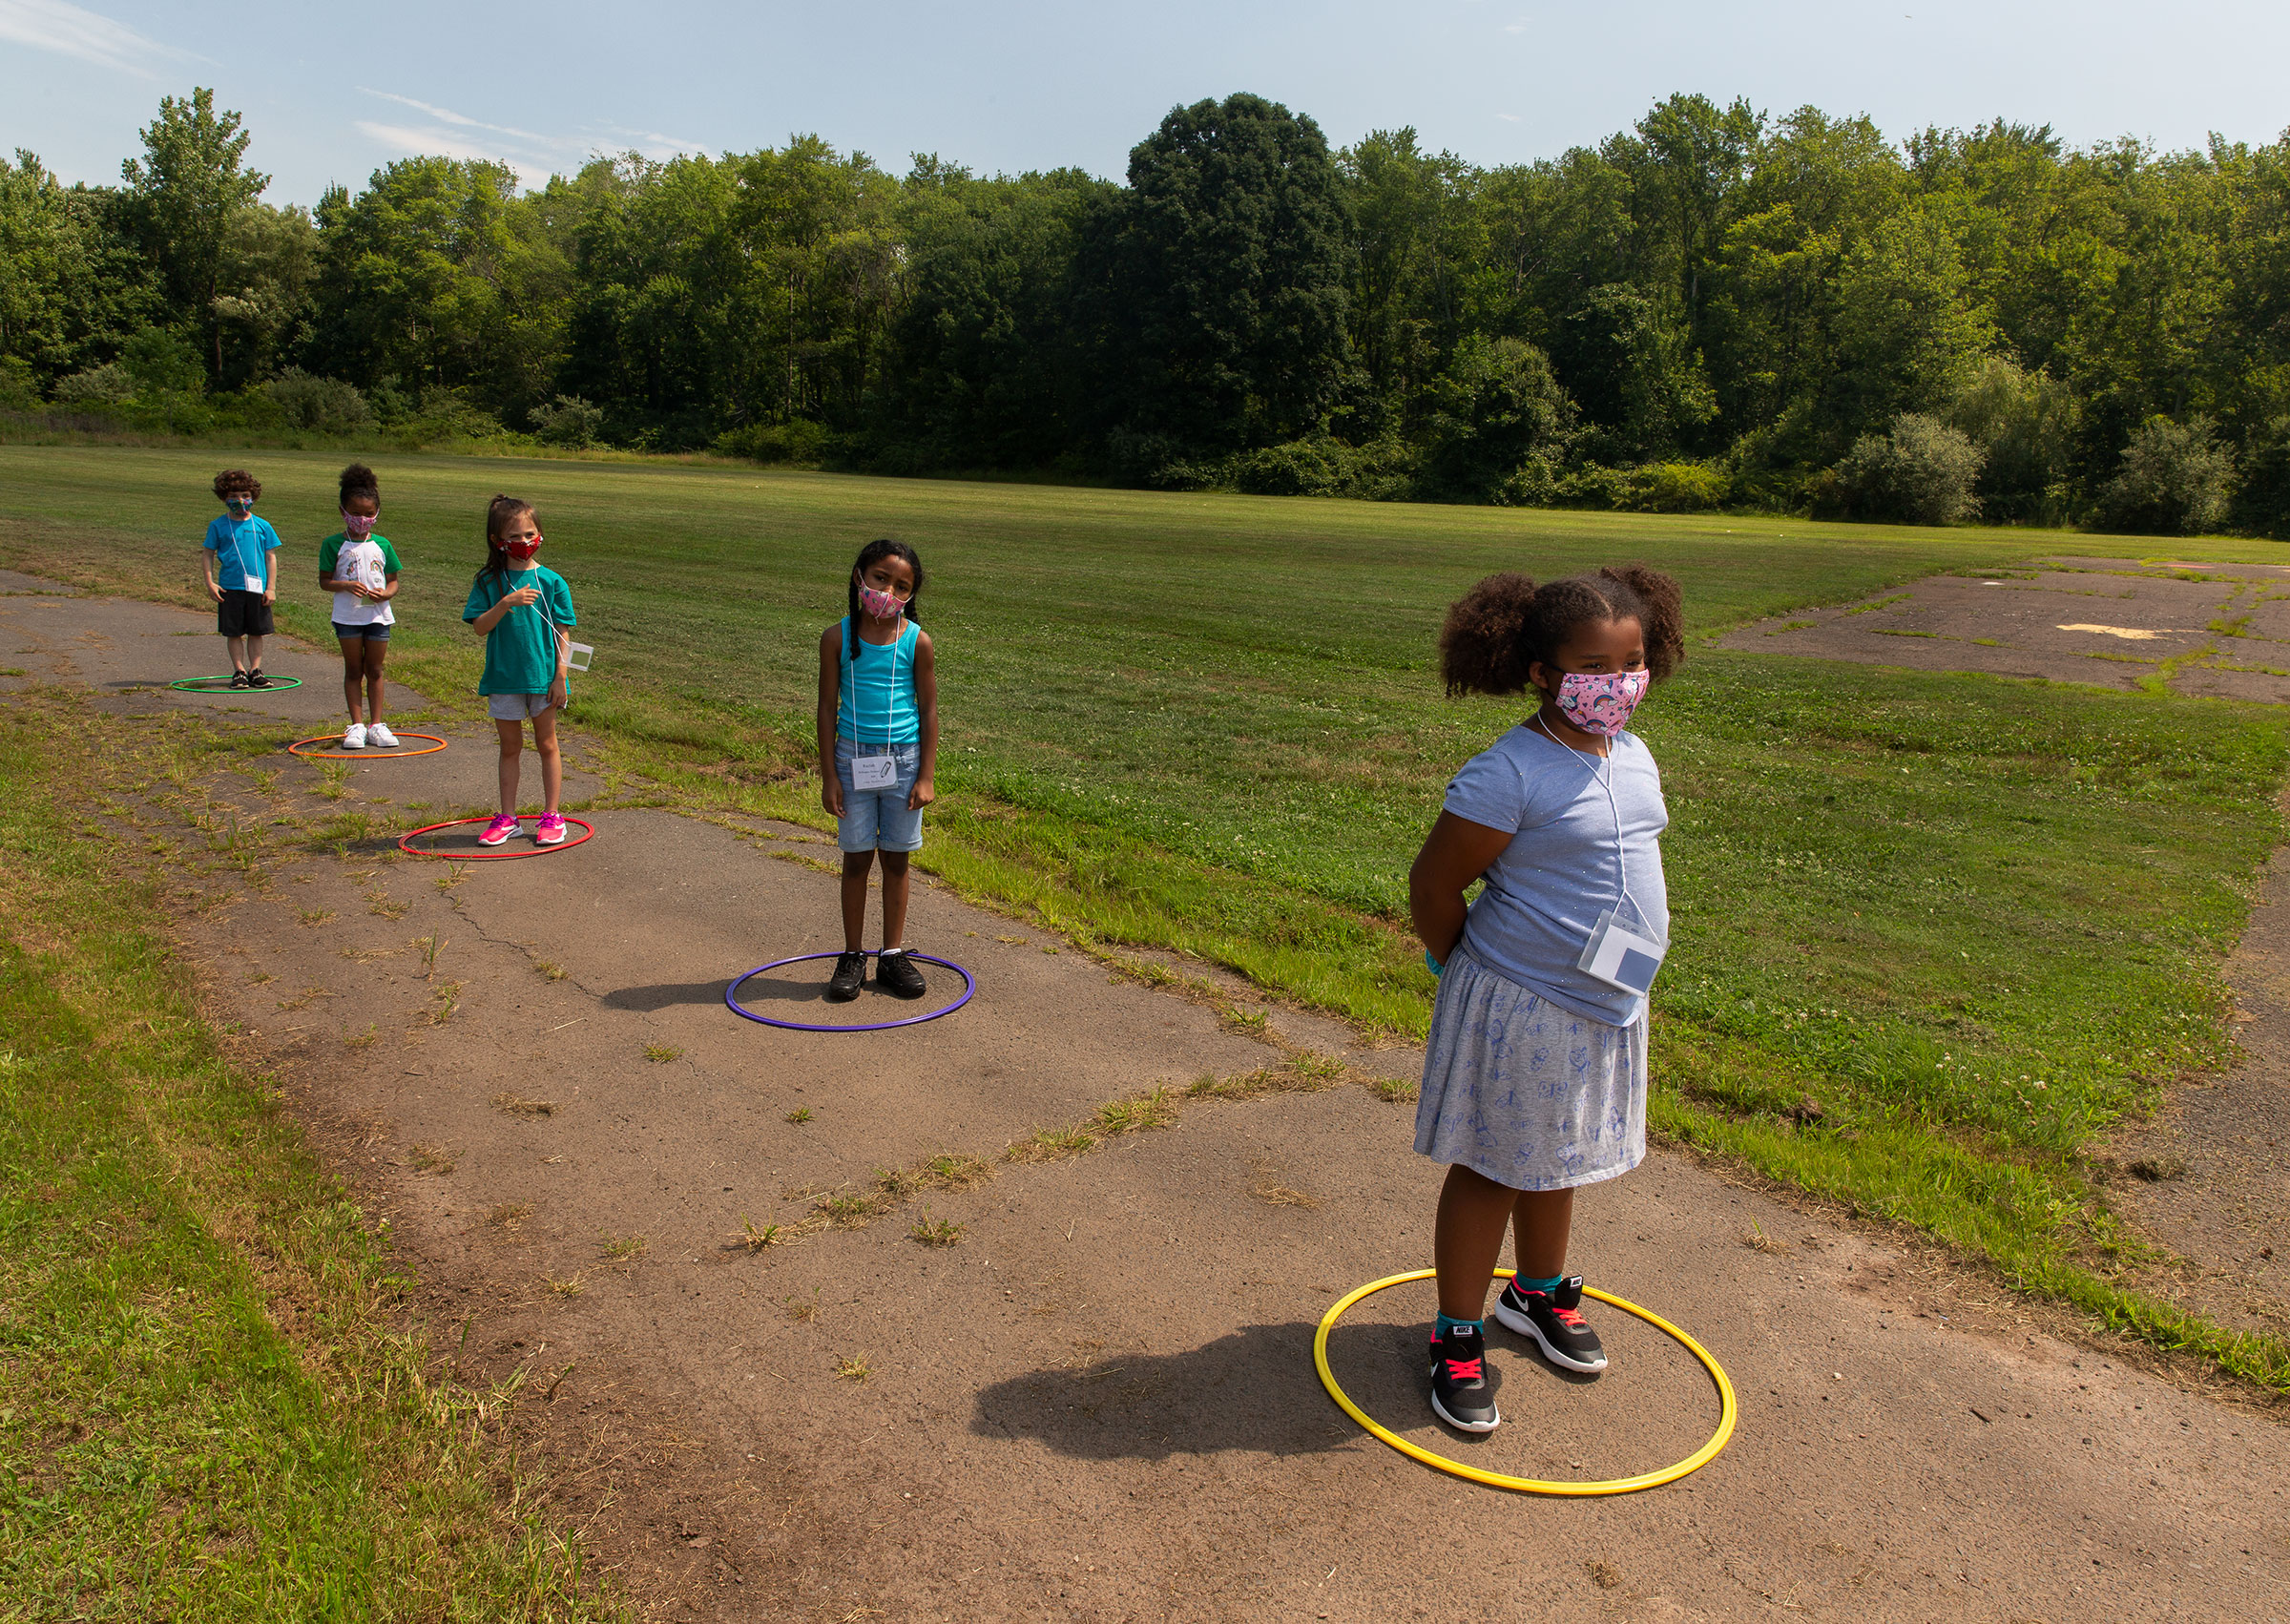 Children line up for school at Wesley Elementary in Middletown, Conn., on July 20